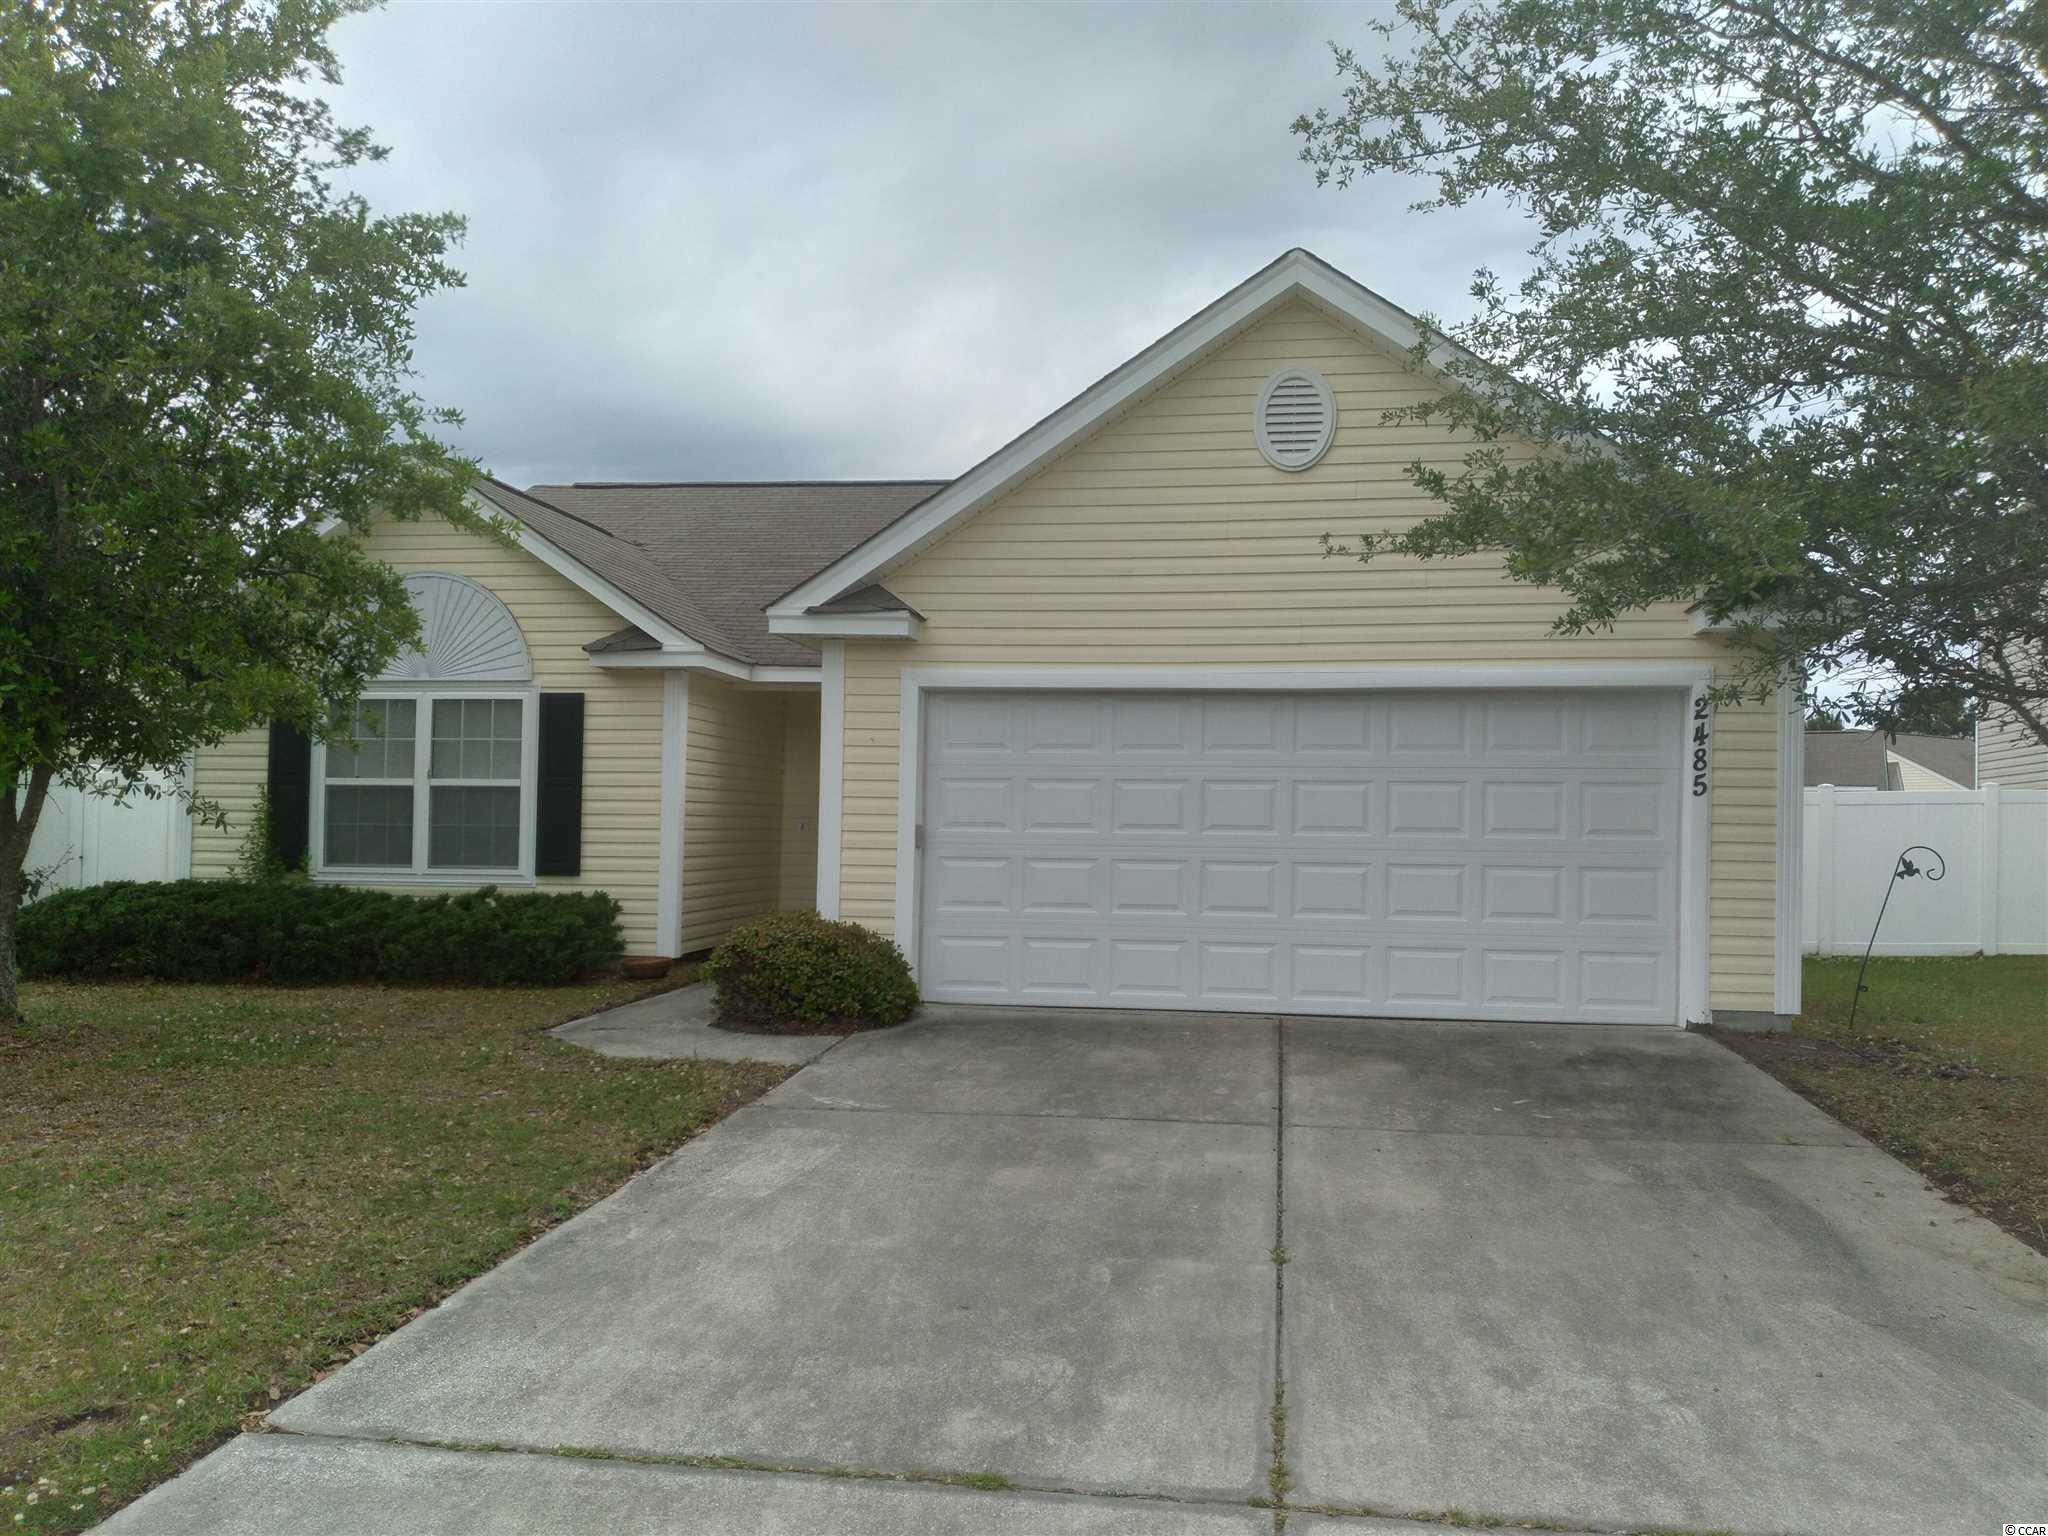 Welcome to your spacious home in the sought after Avalon subdivision of Carolina Forest. Close to all of the shopping and dining options on 501 and International Dr., this 3 bedroom, 2 bath home with a 2 car garage is ideal for a single family dwelling or as an investment property; with great long-term rental possibilities.  The low HOA fee includes top notch amenities in a beautiful park setting: pool, outdoor basketball courts, fields for soccer or baseball and more!  The seller is offering a credit at the closing table for an agreed upon offer to help with any desired upgrades.  Don't miss out on this great opportunity; this home won't last long so call the listing agent today to schedule your personal showing.  Professional photos will be added soon.